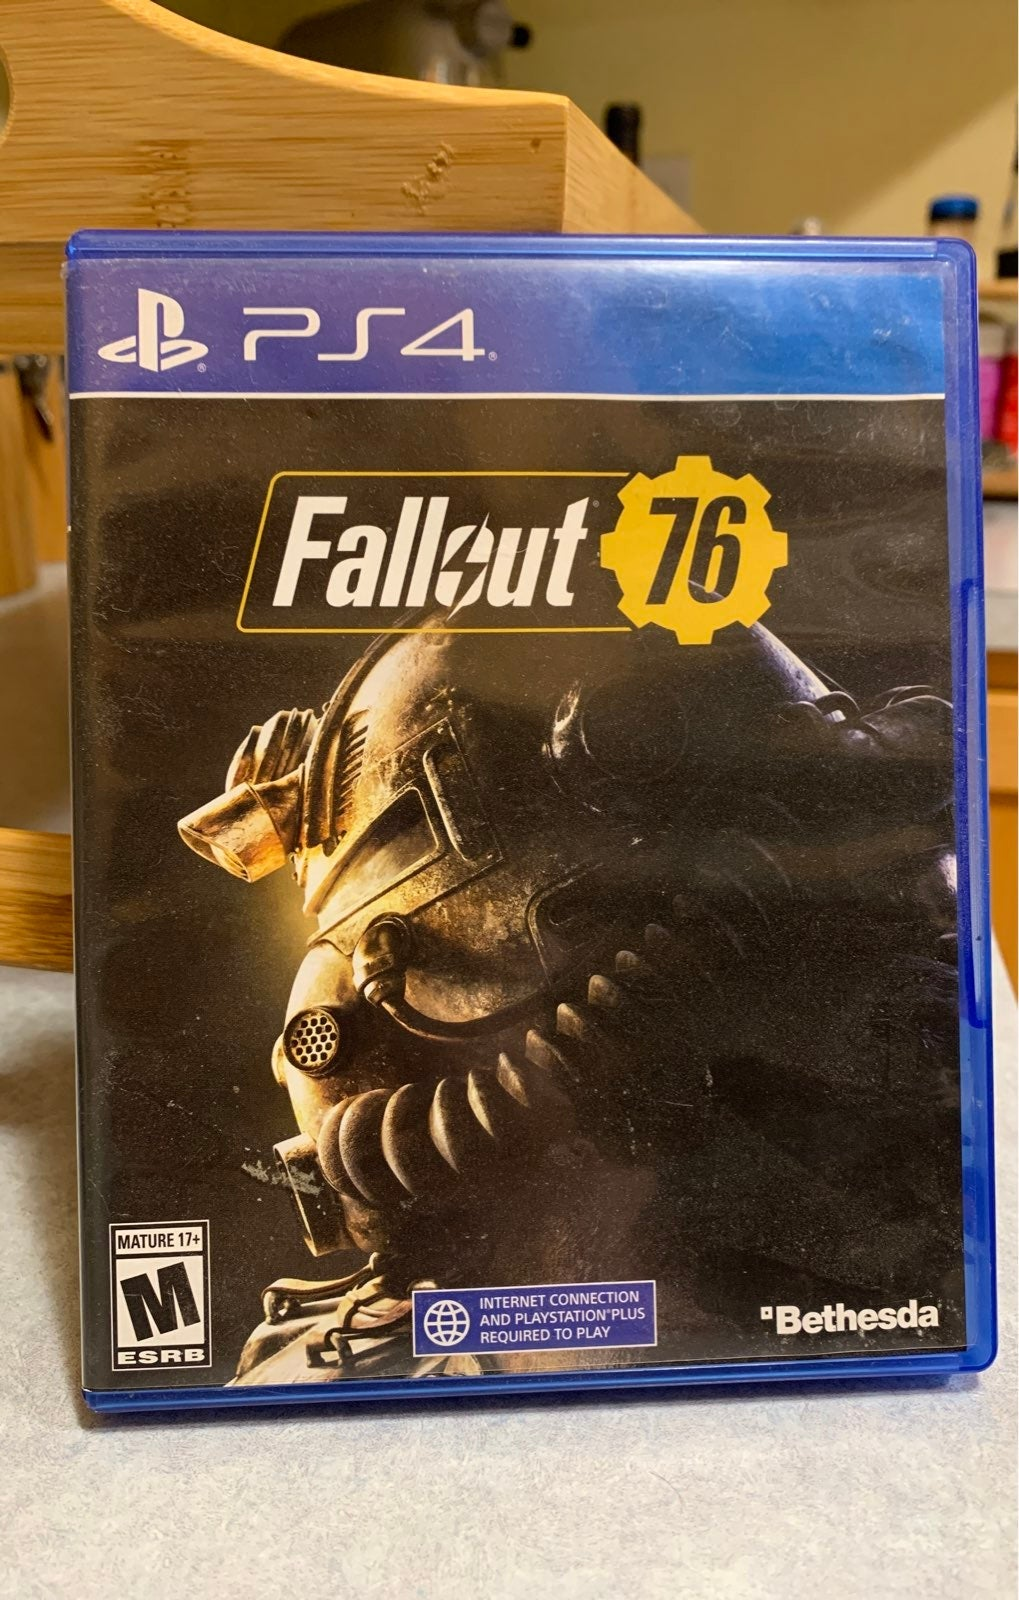 Fallout 76 on Playstation 4